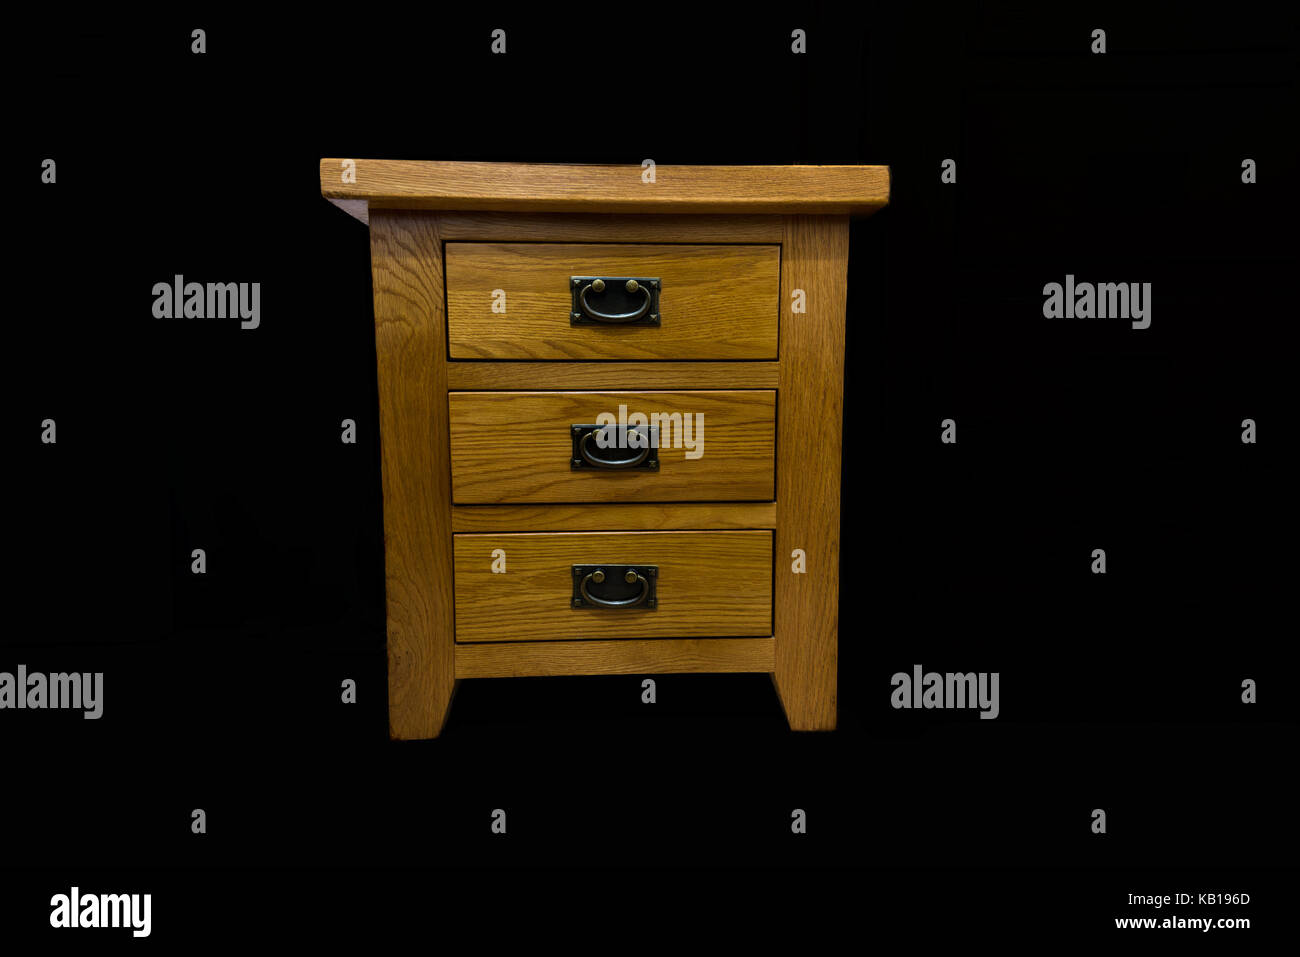 A set of antique handled oak drawers isolated on a black back ground with smiley handles - Stock Image